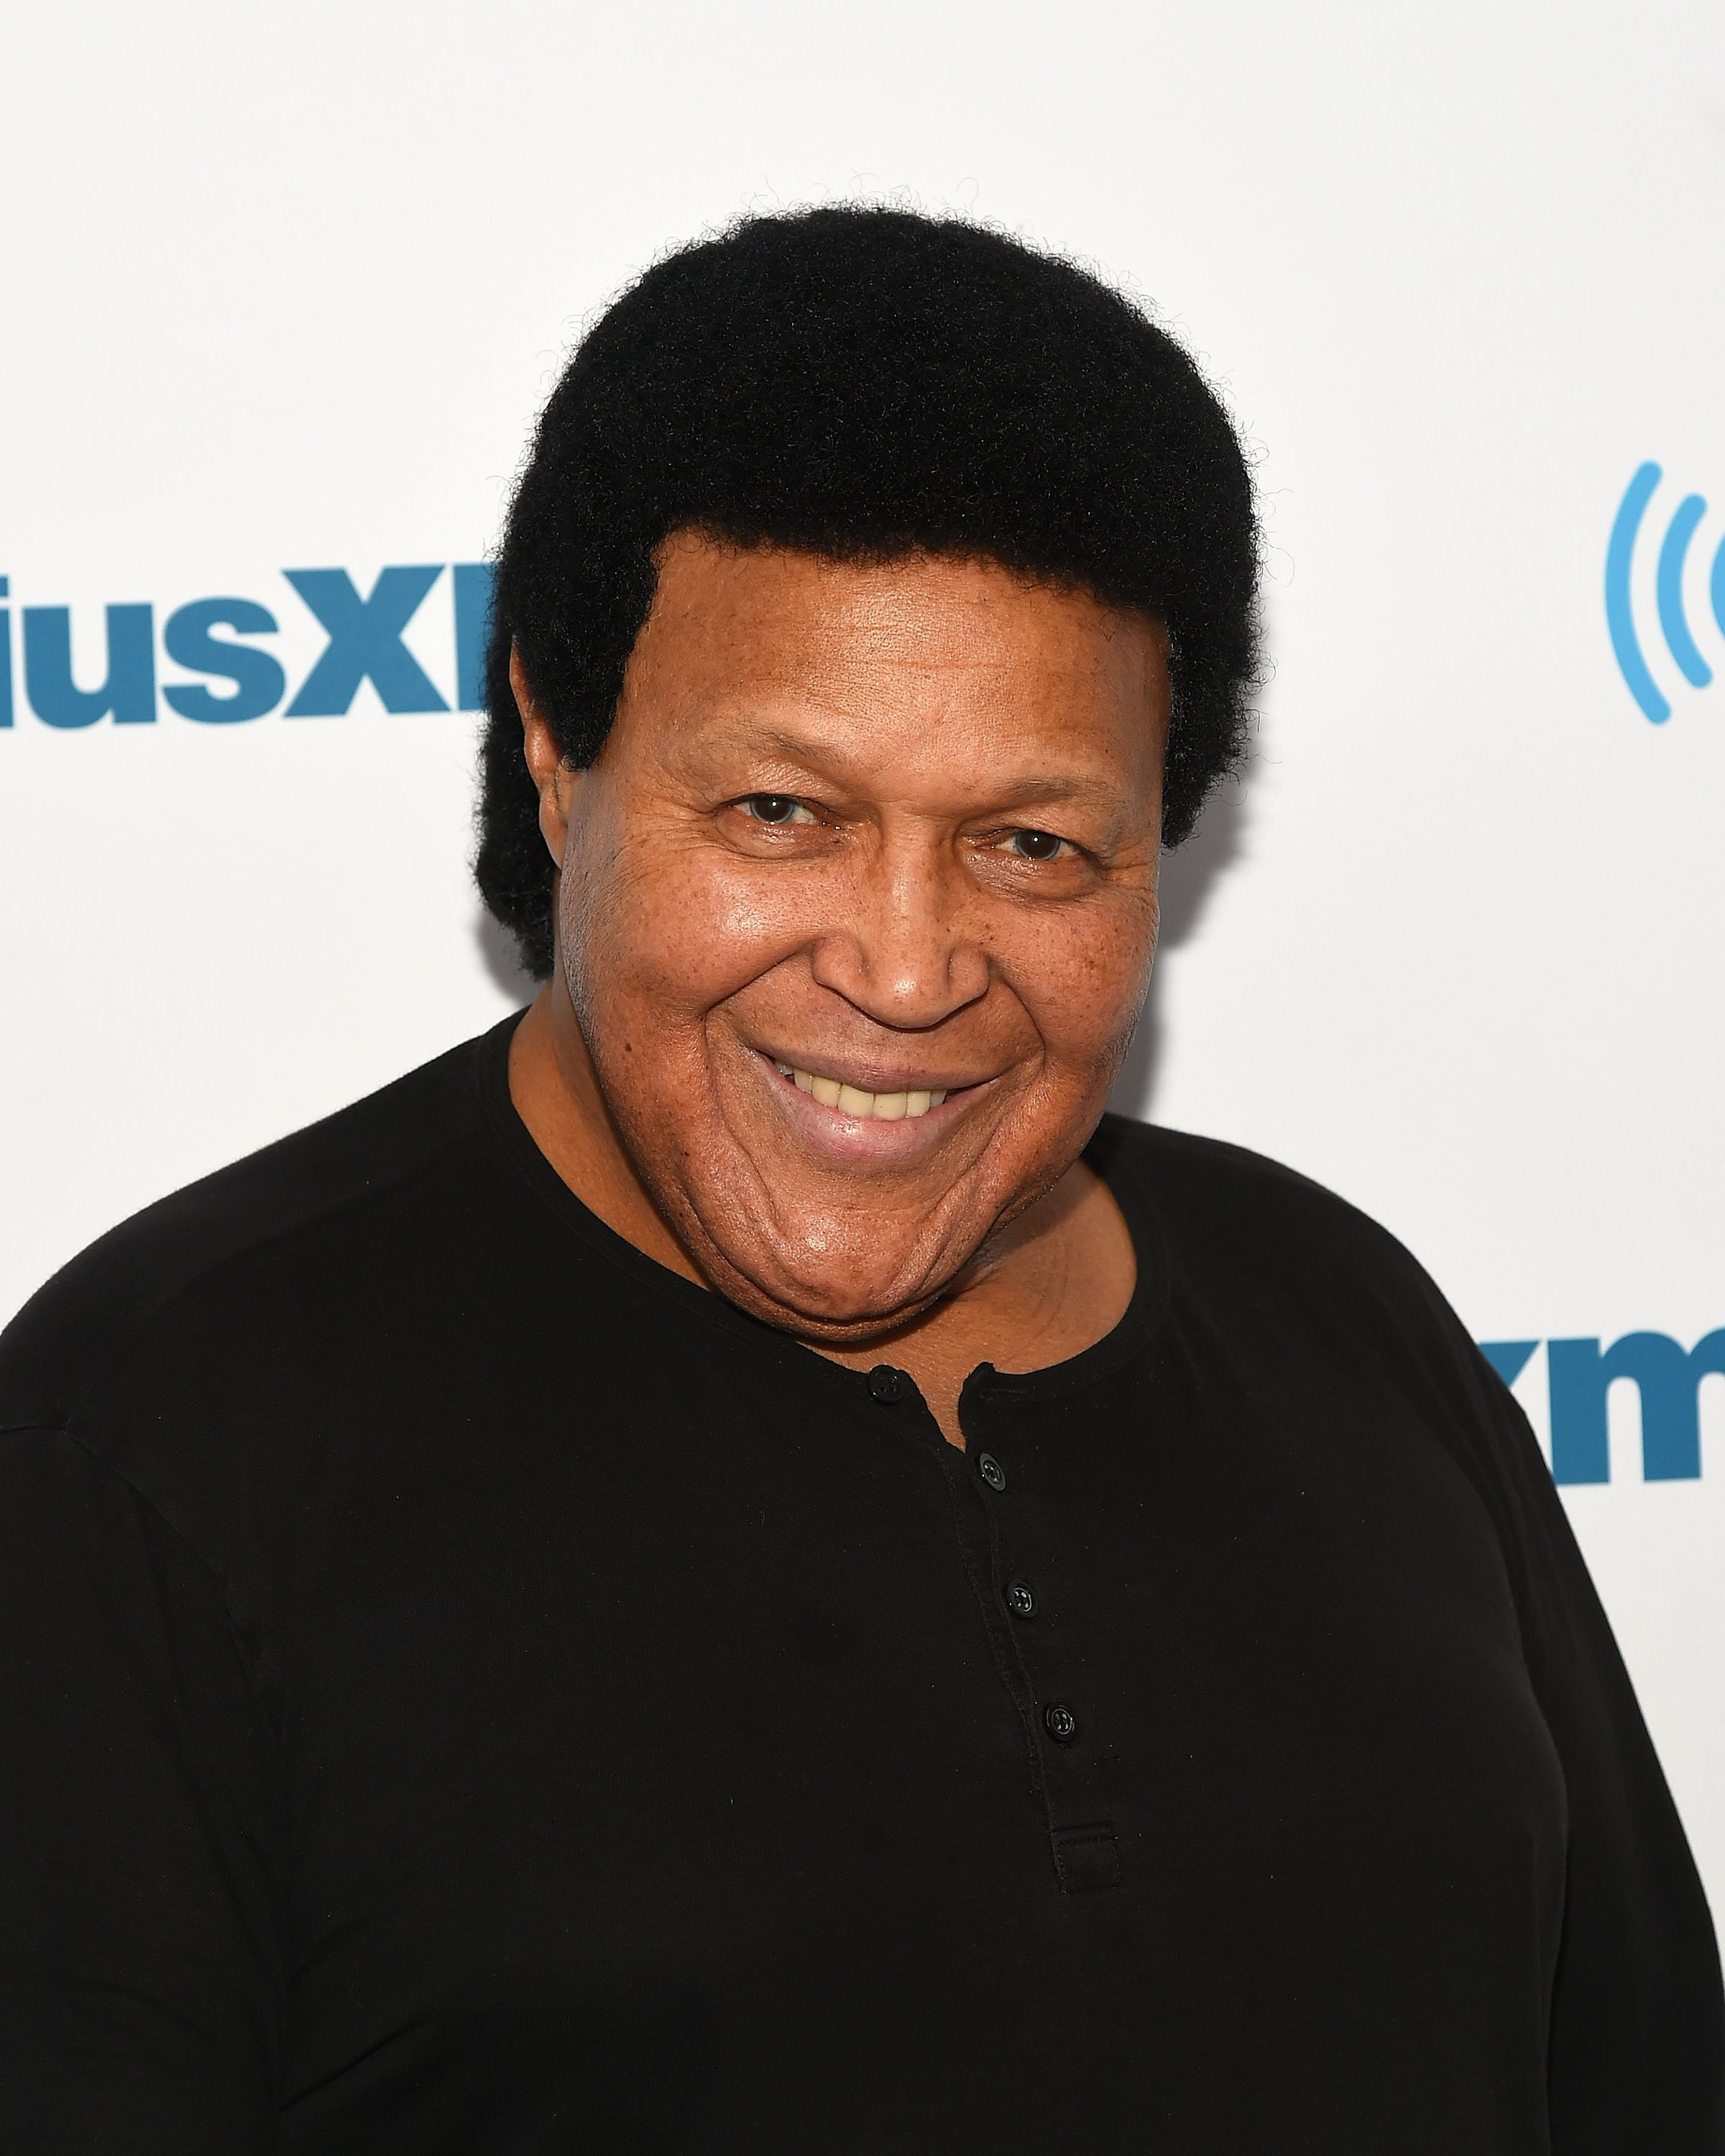 Singer/songwriter Chubby Checker visits at SiriusXM Studios on March 23, 2016, in New York City. | Source: Getty Images.